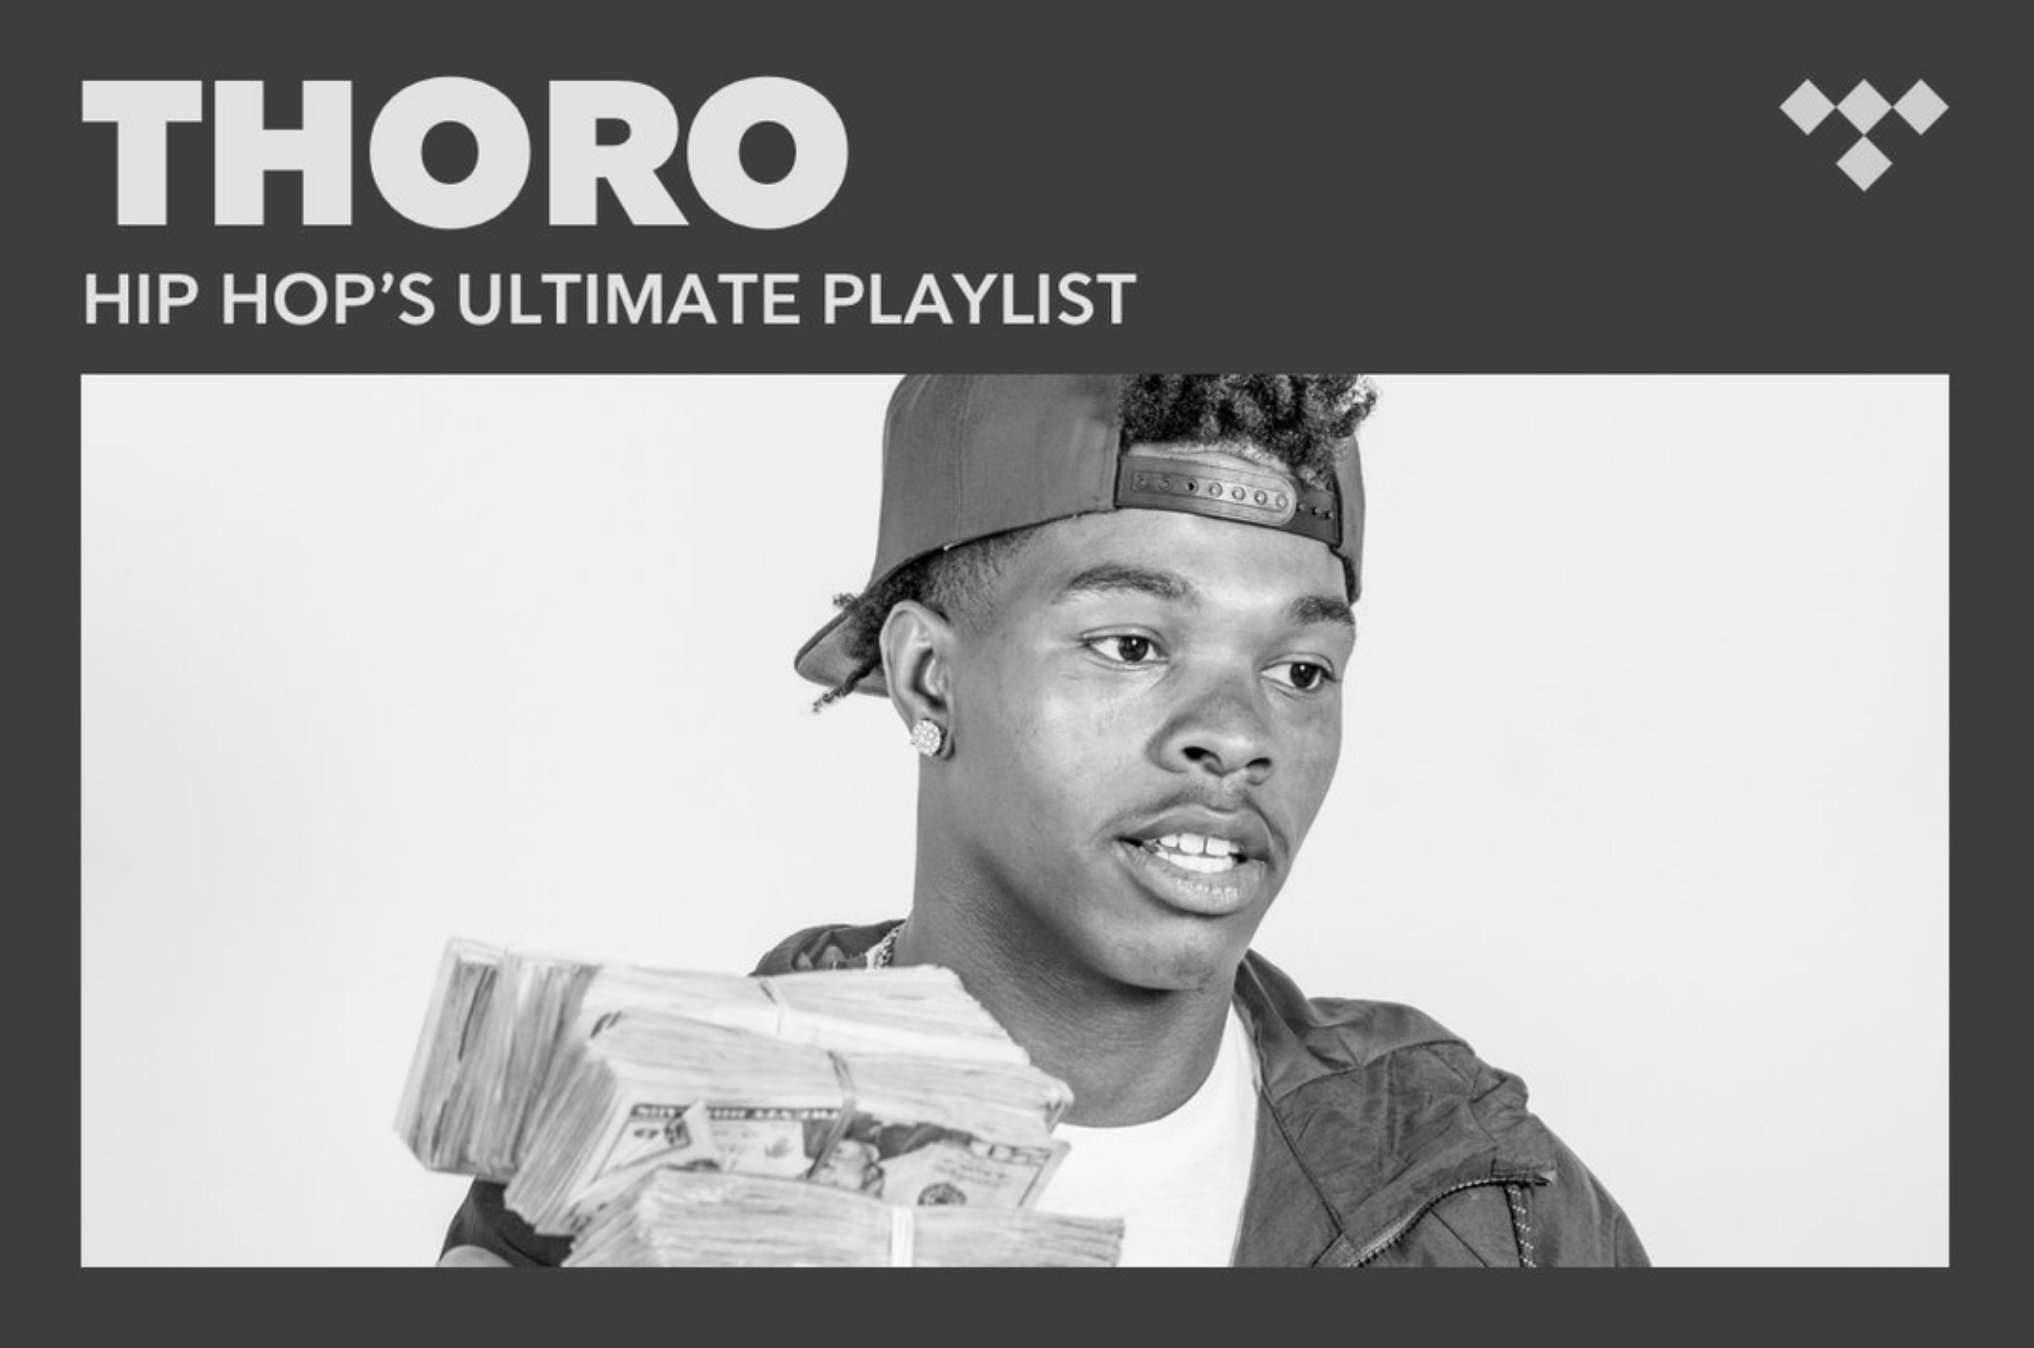 #Thoro Hip Hop's Ultimate Playlist https://t.co/ZYQ2uPMg8d #TIDAL https://t.co/vYTt40UMeo